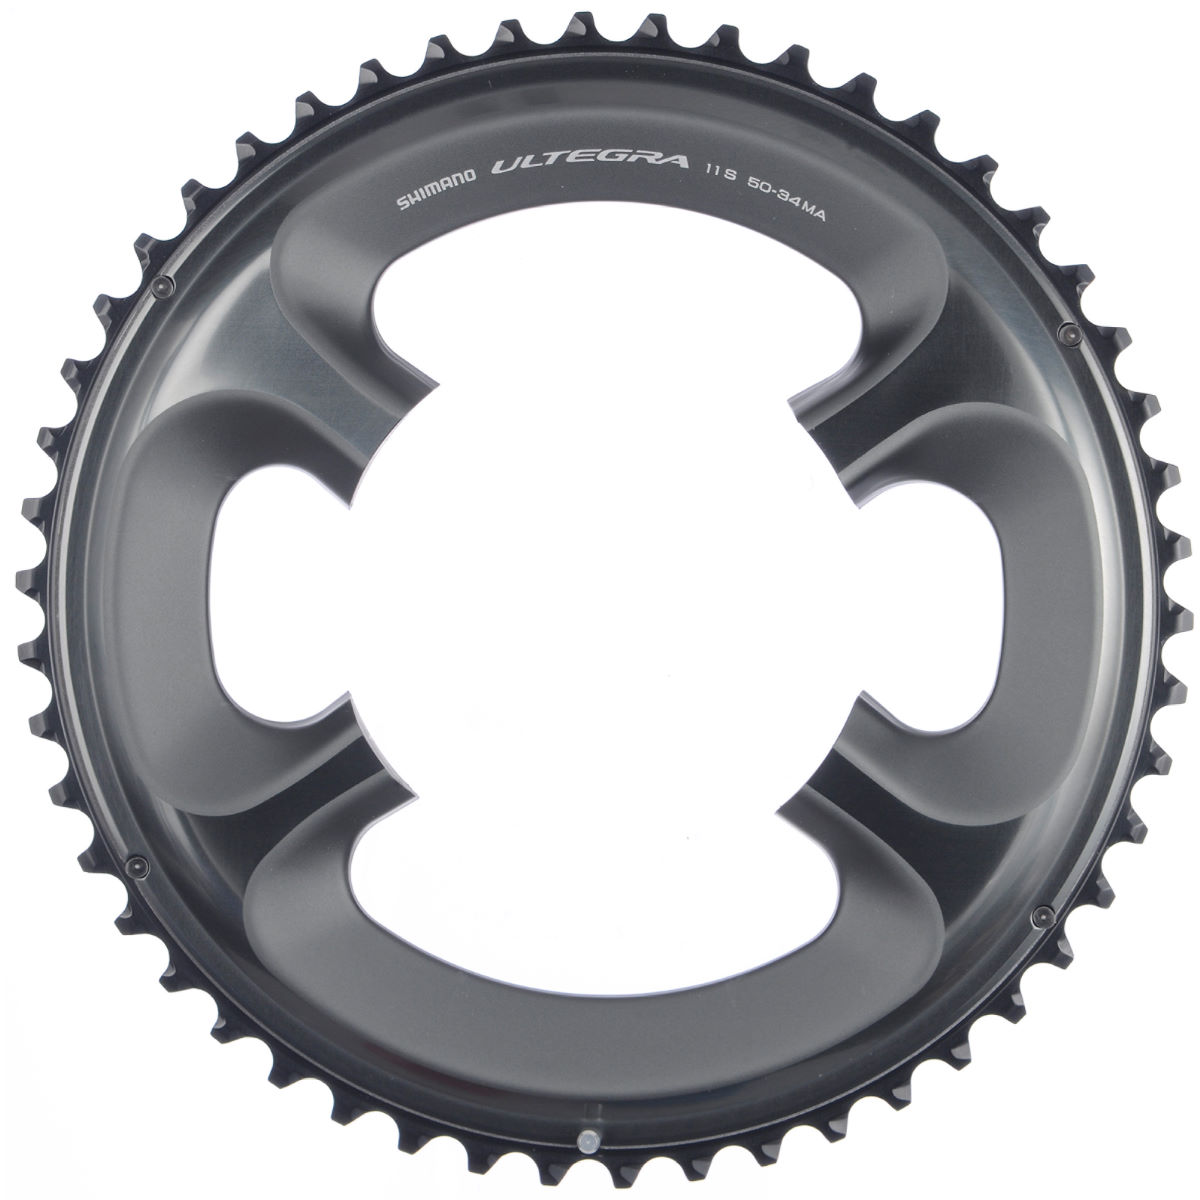 Plateau externe Shimano Ultegra FC-6800 - 46 Tooth (46-36) Gris